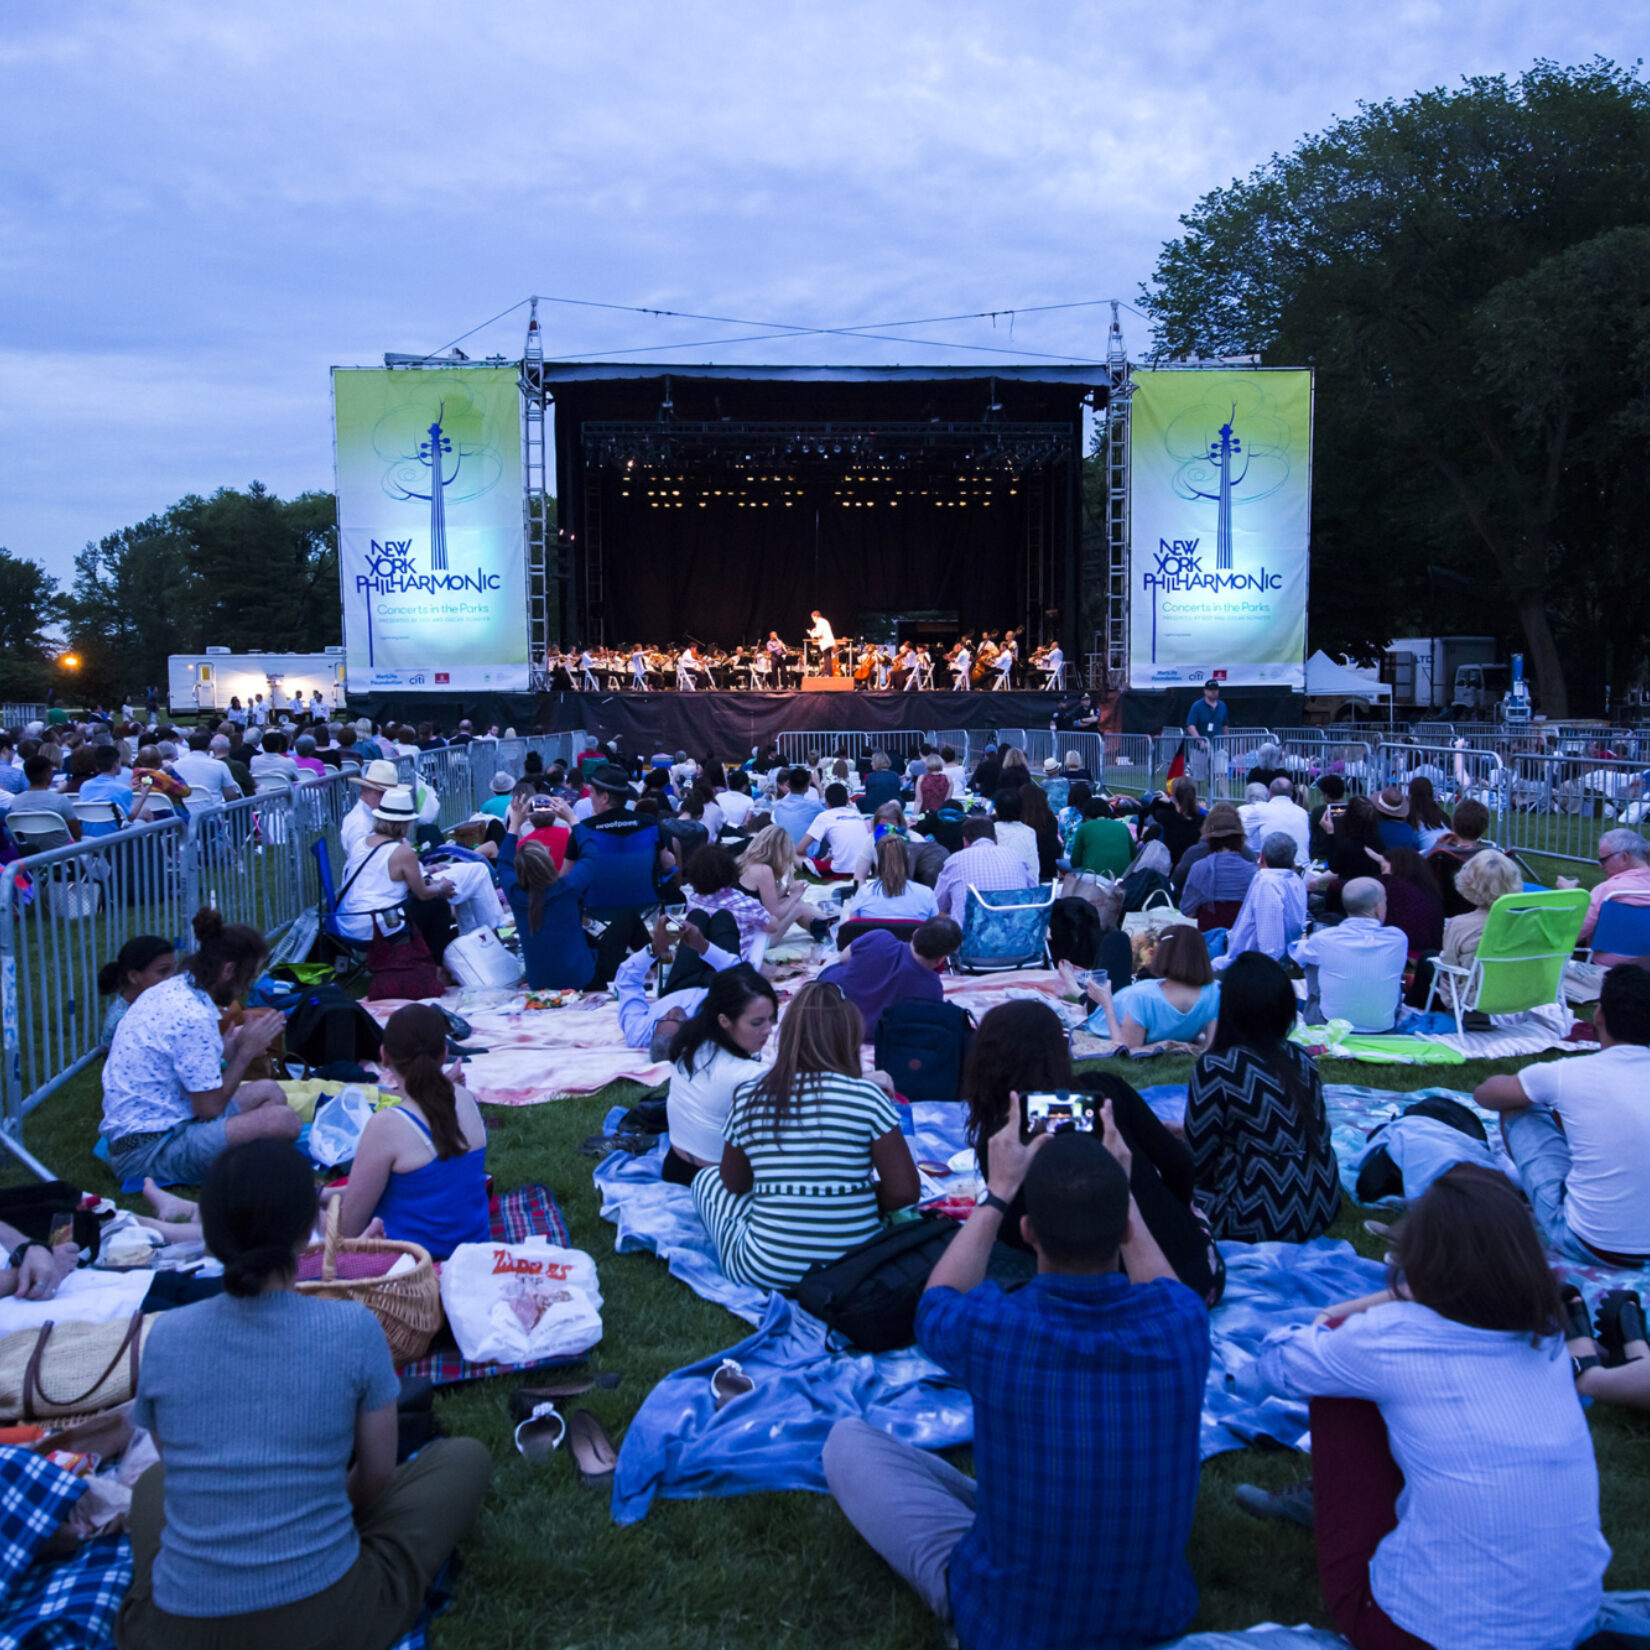 New York Philharmonic performs in Central Park on a summer evening